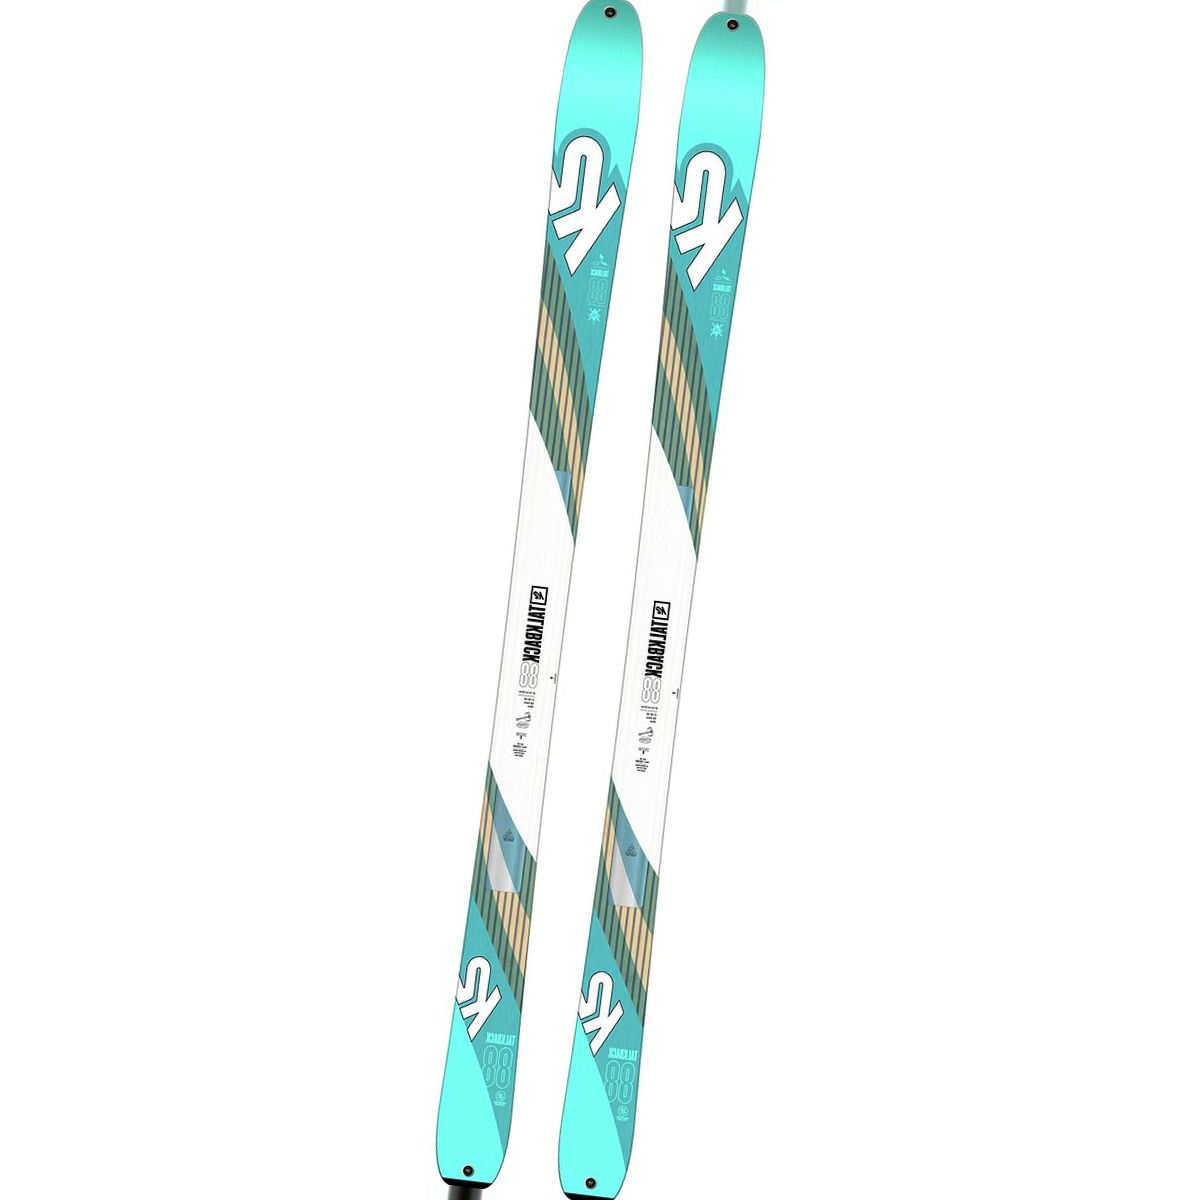 K2 Talkback 88 Ski - Women's